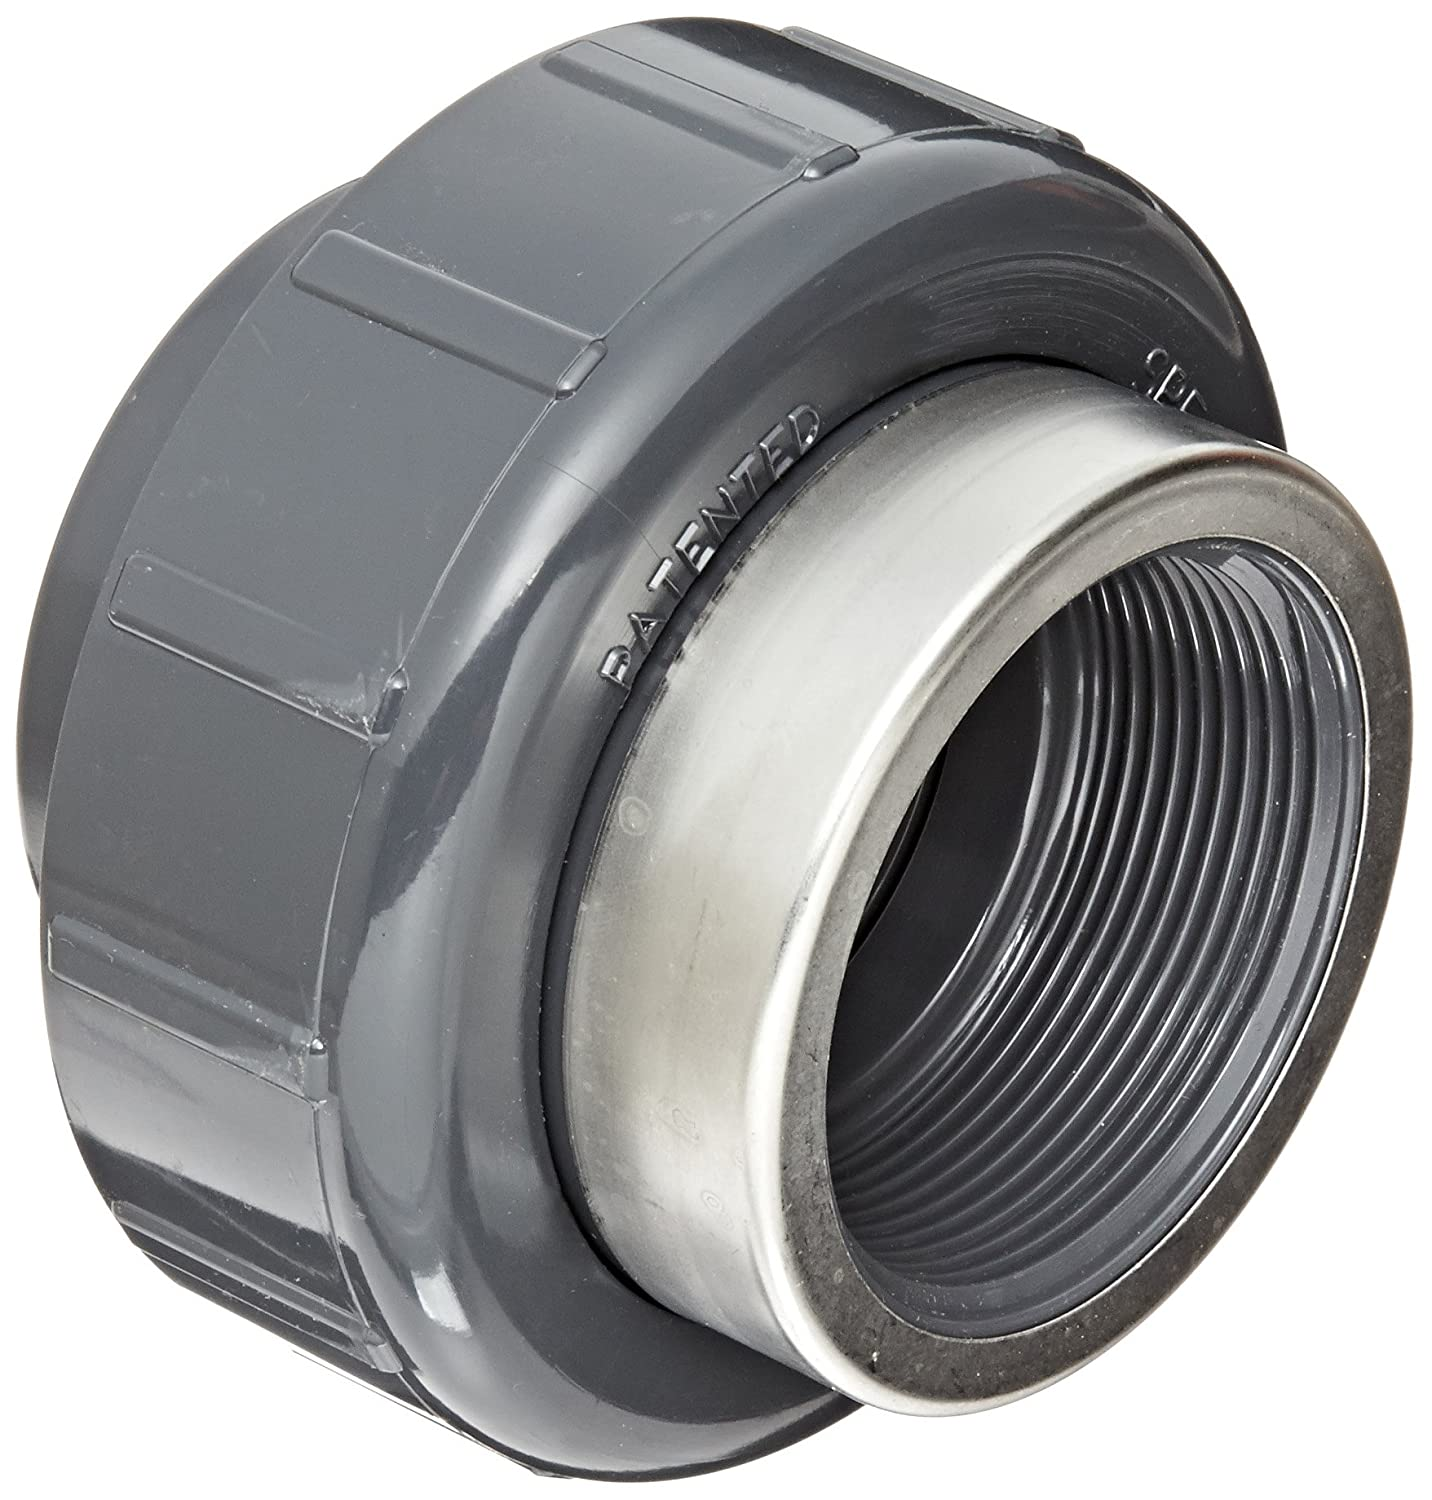 Spears 8059-SR Series PVC Pipe Fitting, Union with Viton O-Ring, Schedule 80, Gray, 1 Socket x Stainless Steel Reinforced NPT Female Spears Manufacturing